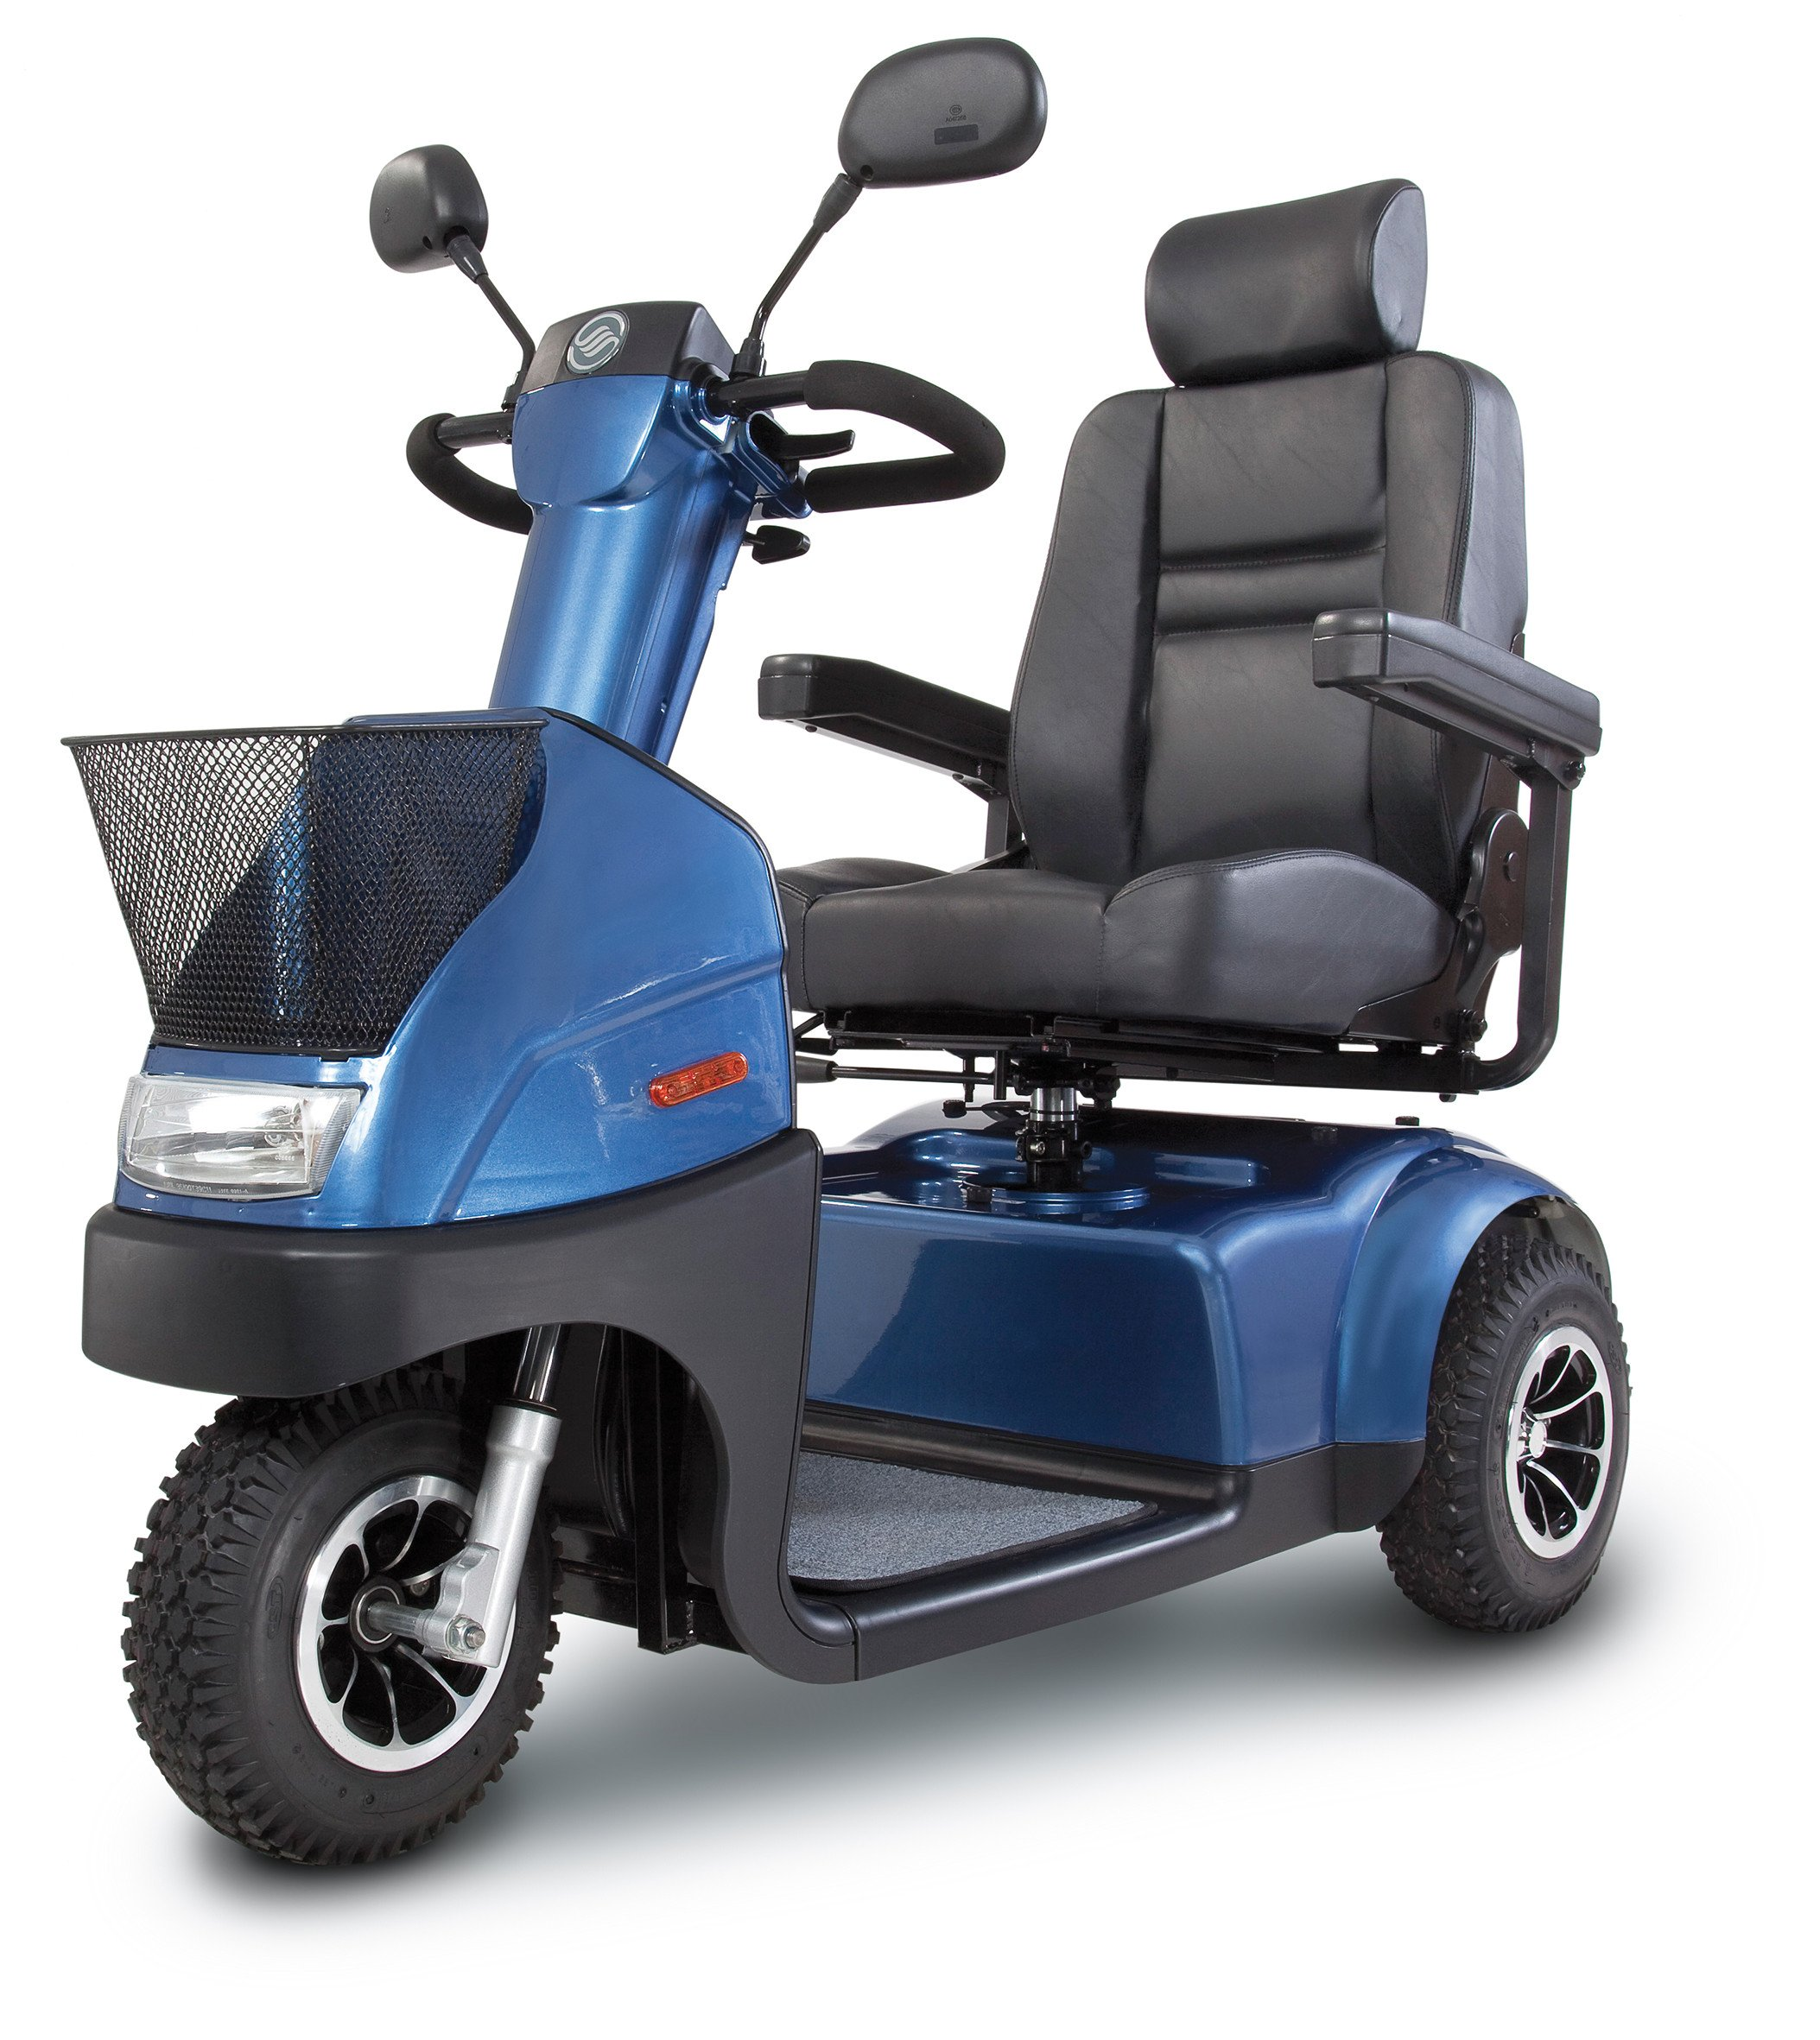 Afiscooter C3 3-Wheel Scooter - Blue